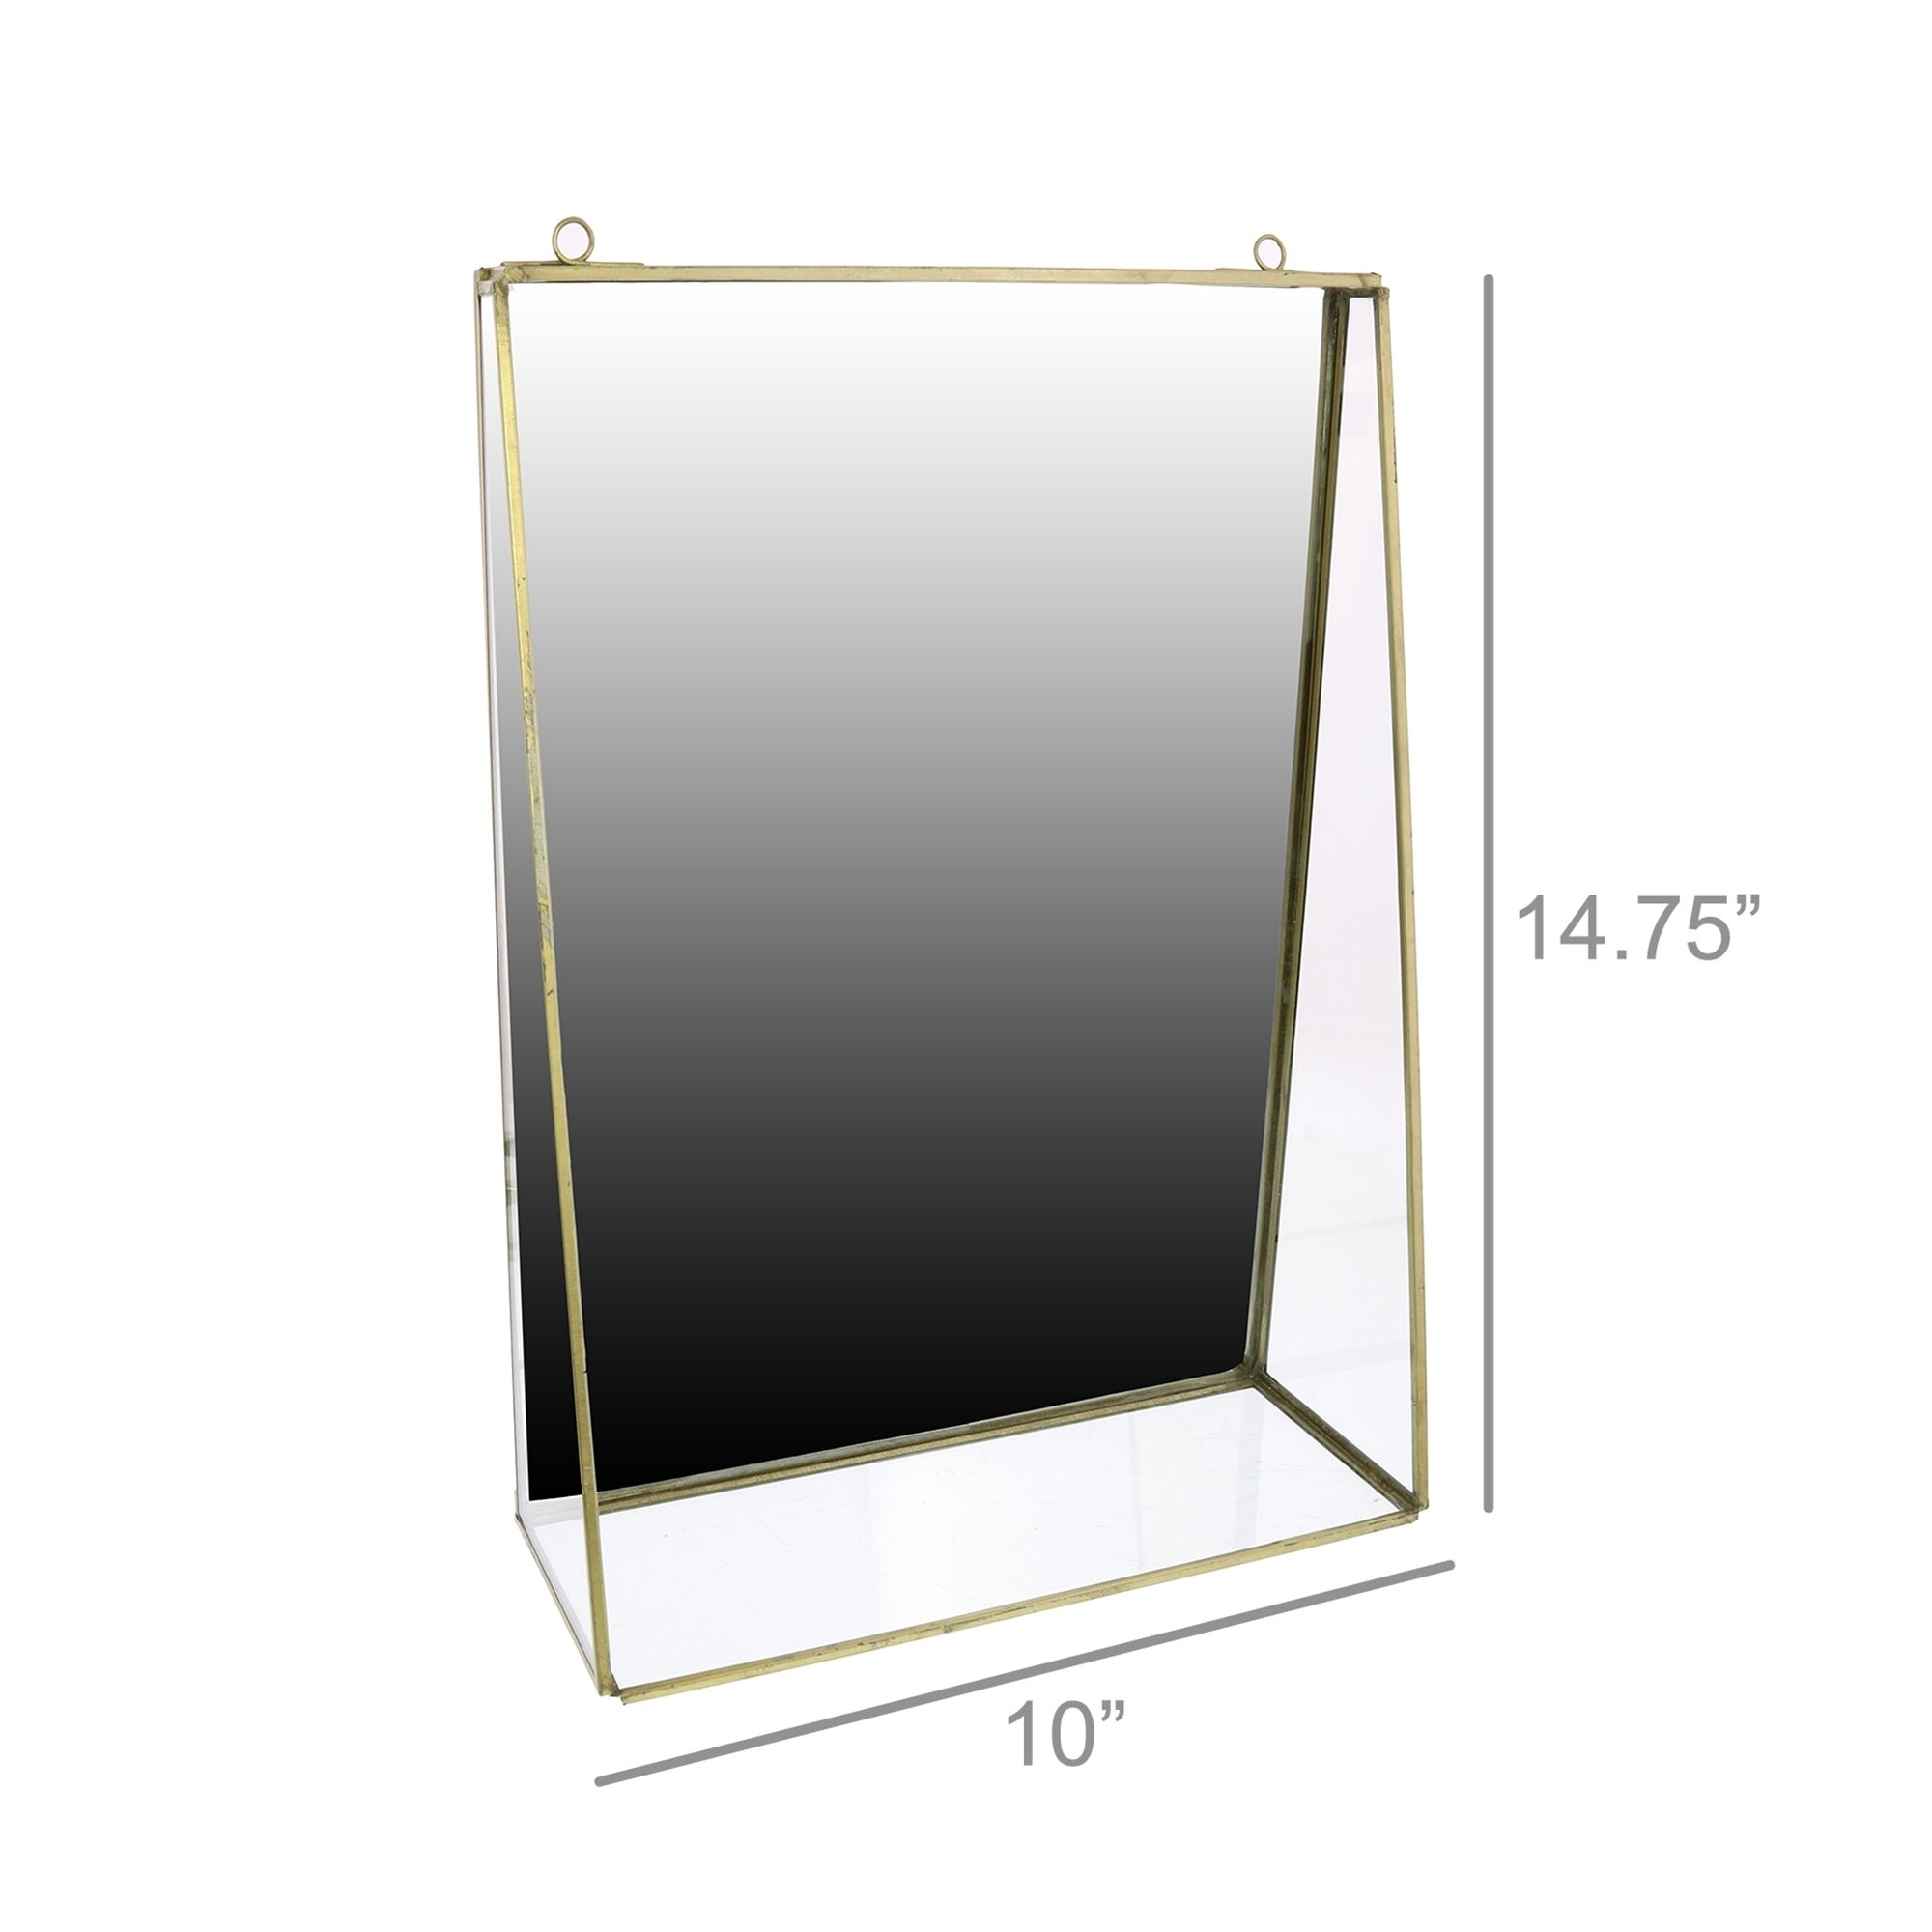 Metal Wall Shelf With Rectangular Mirror And Ring Holder Large Silver Overstock 31937800